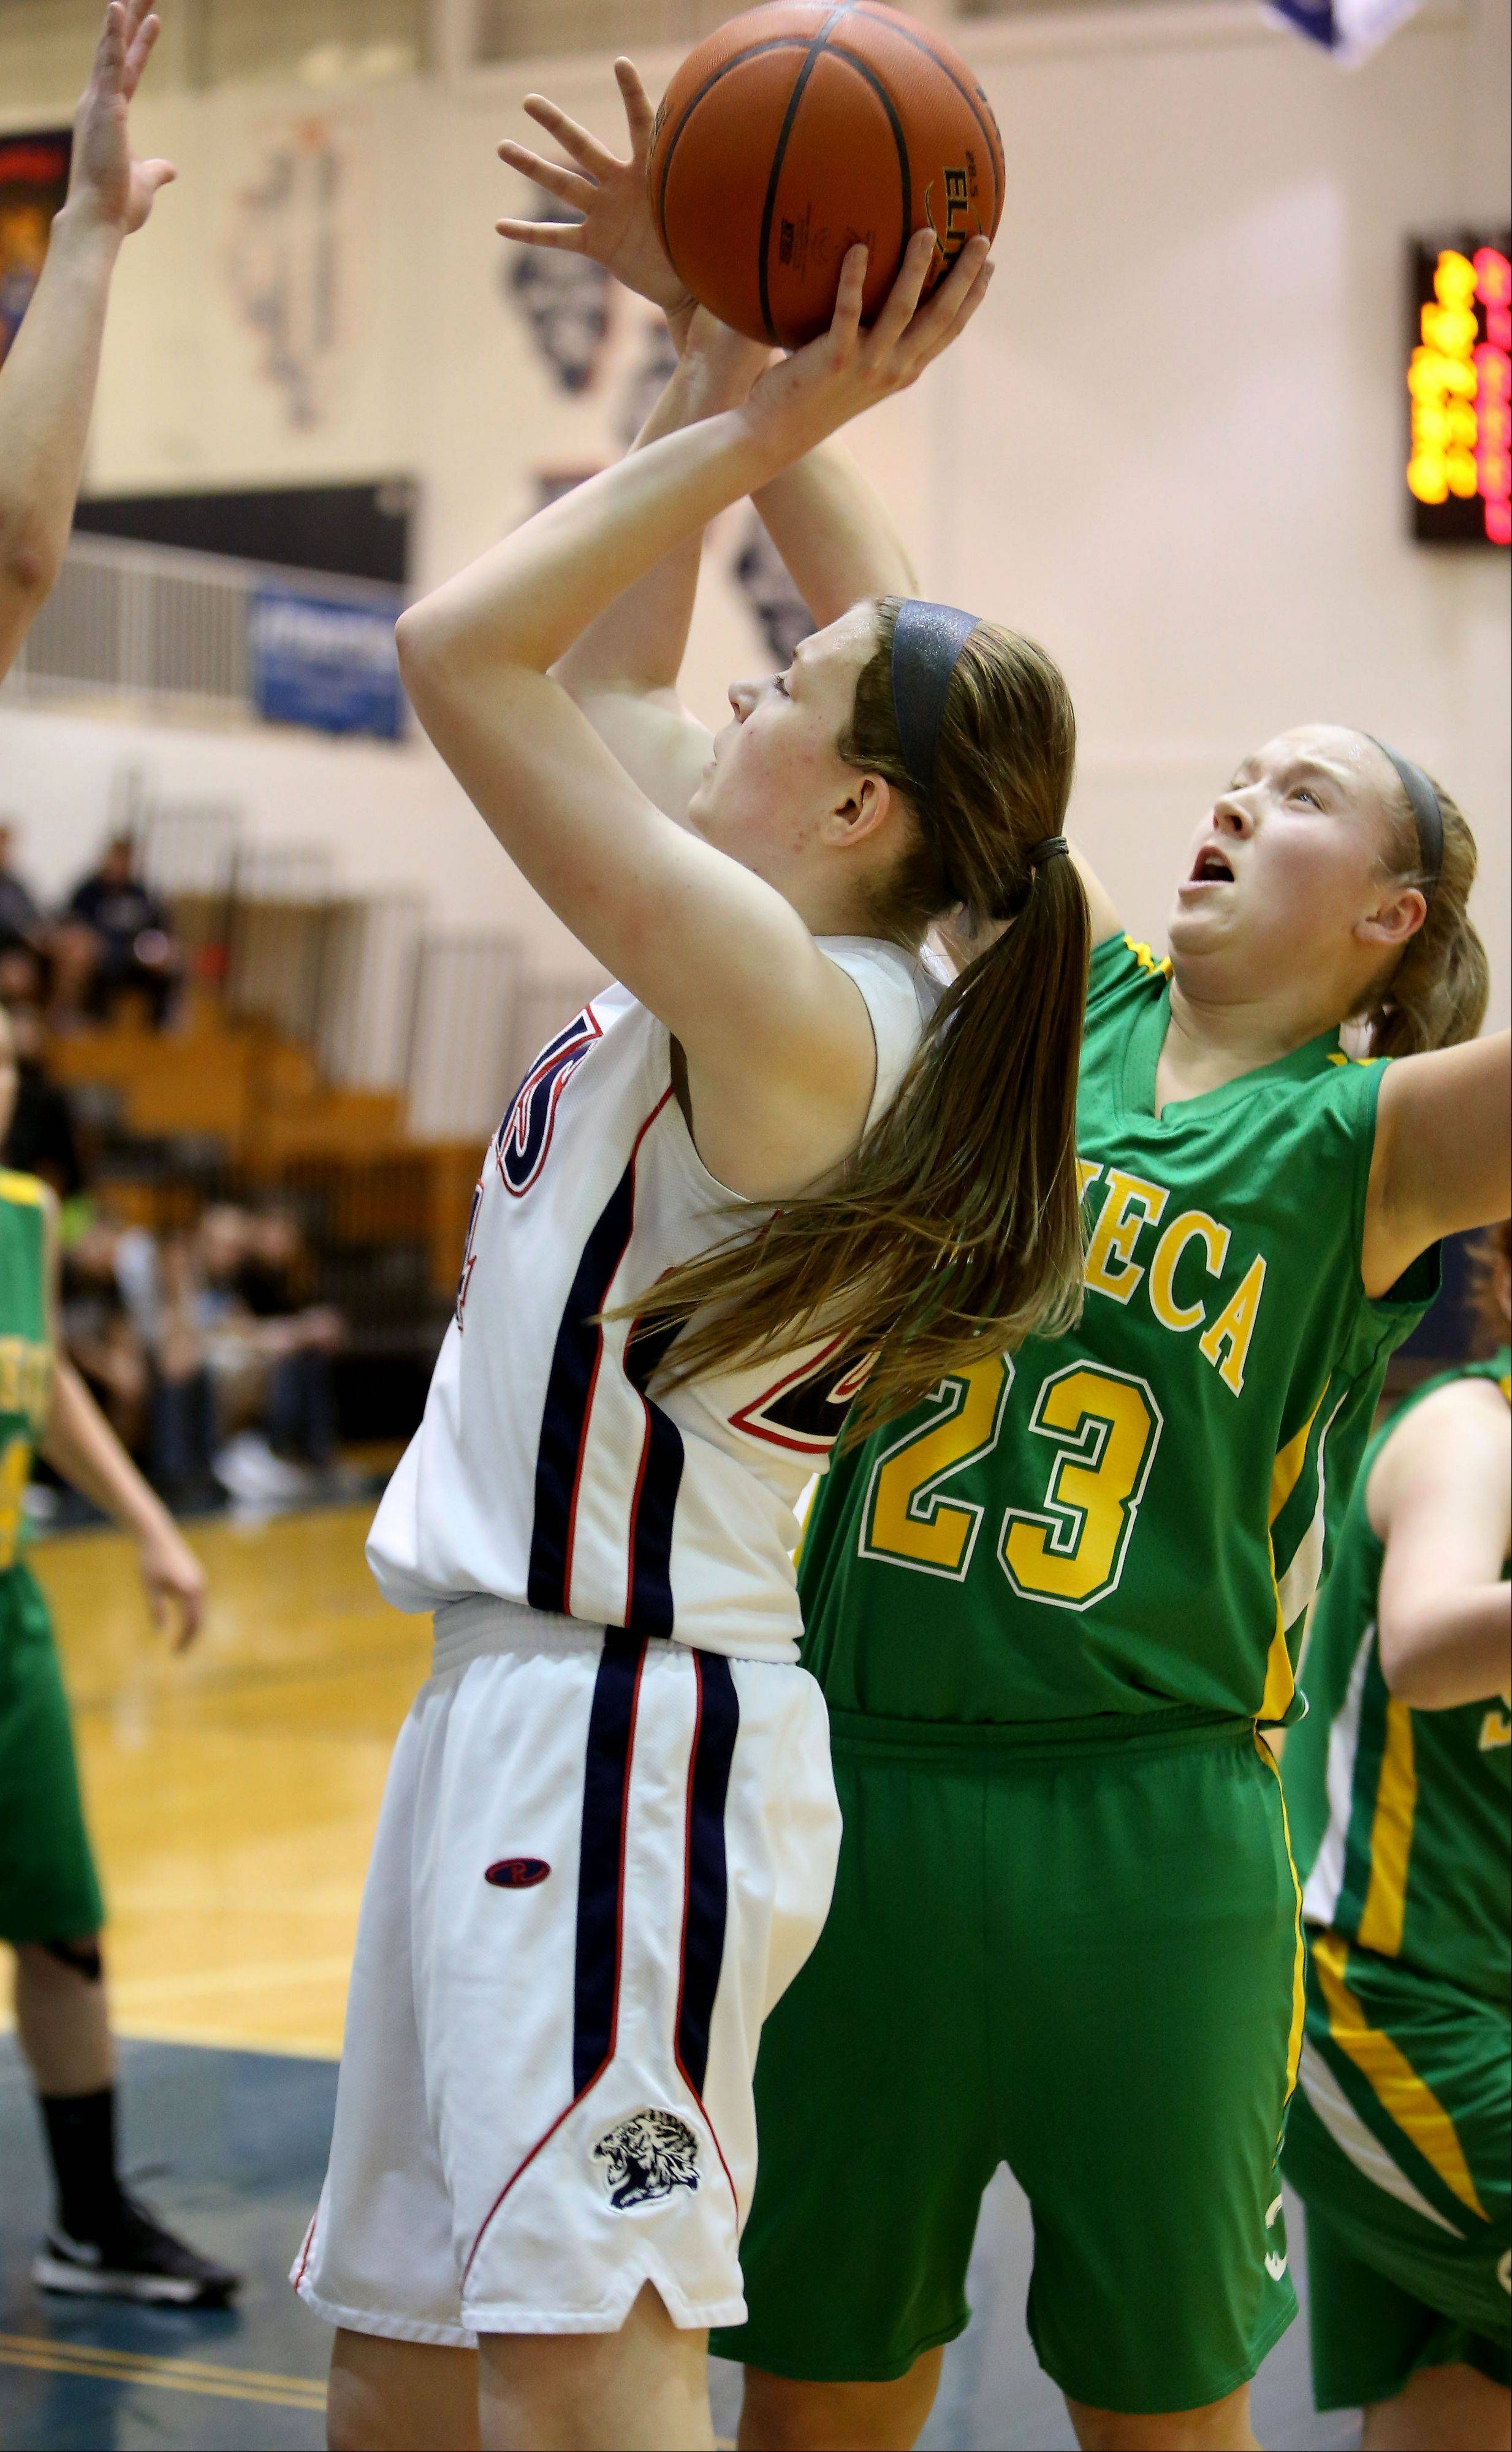 Lisle's Leah Reeves, left, shoots for two points as Seneca's Jacey Lamboley defends.